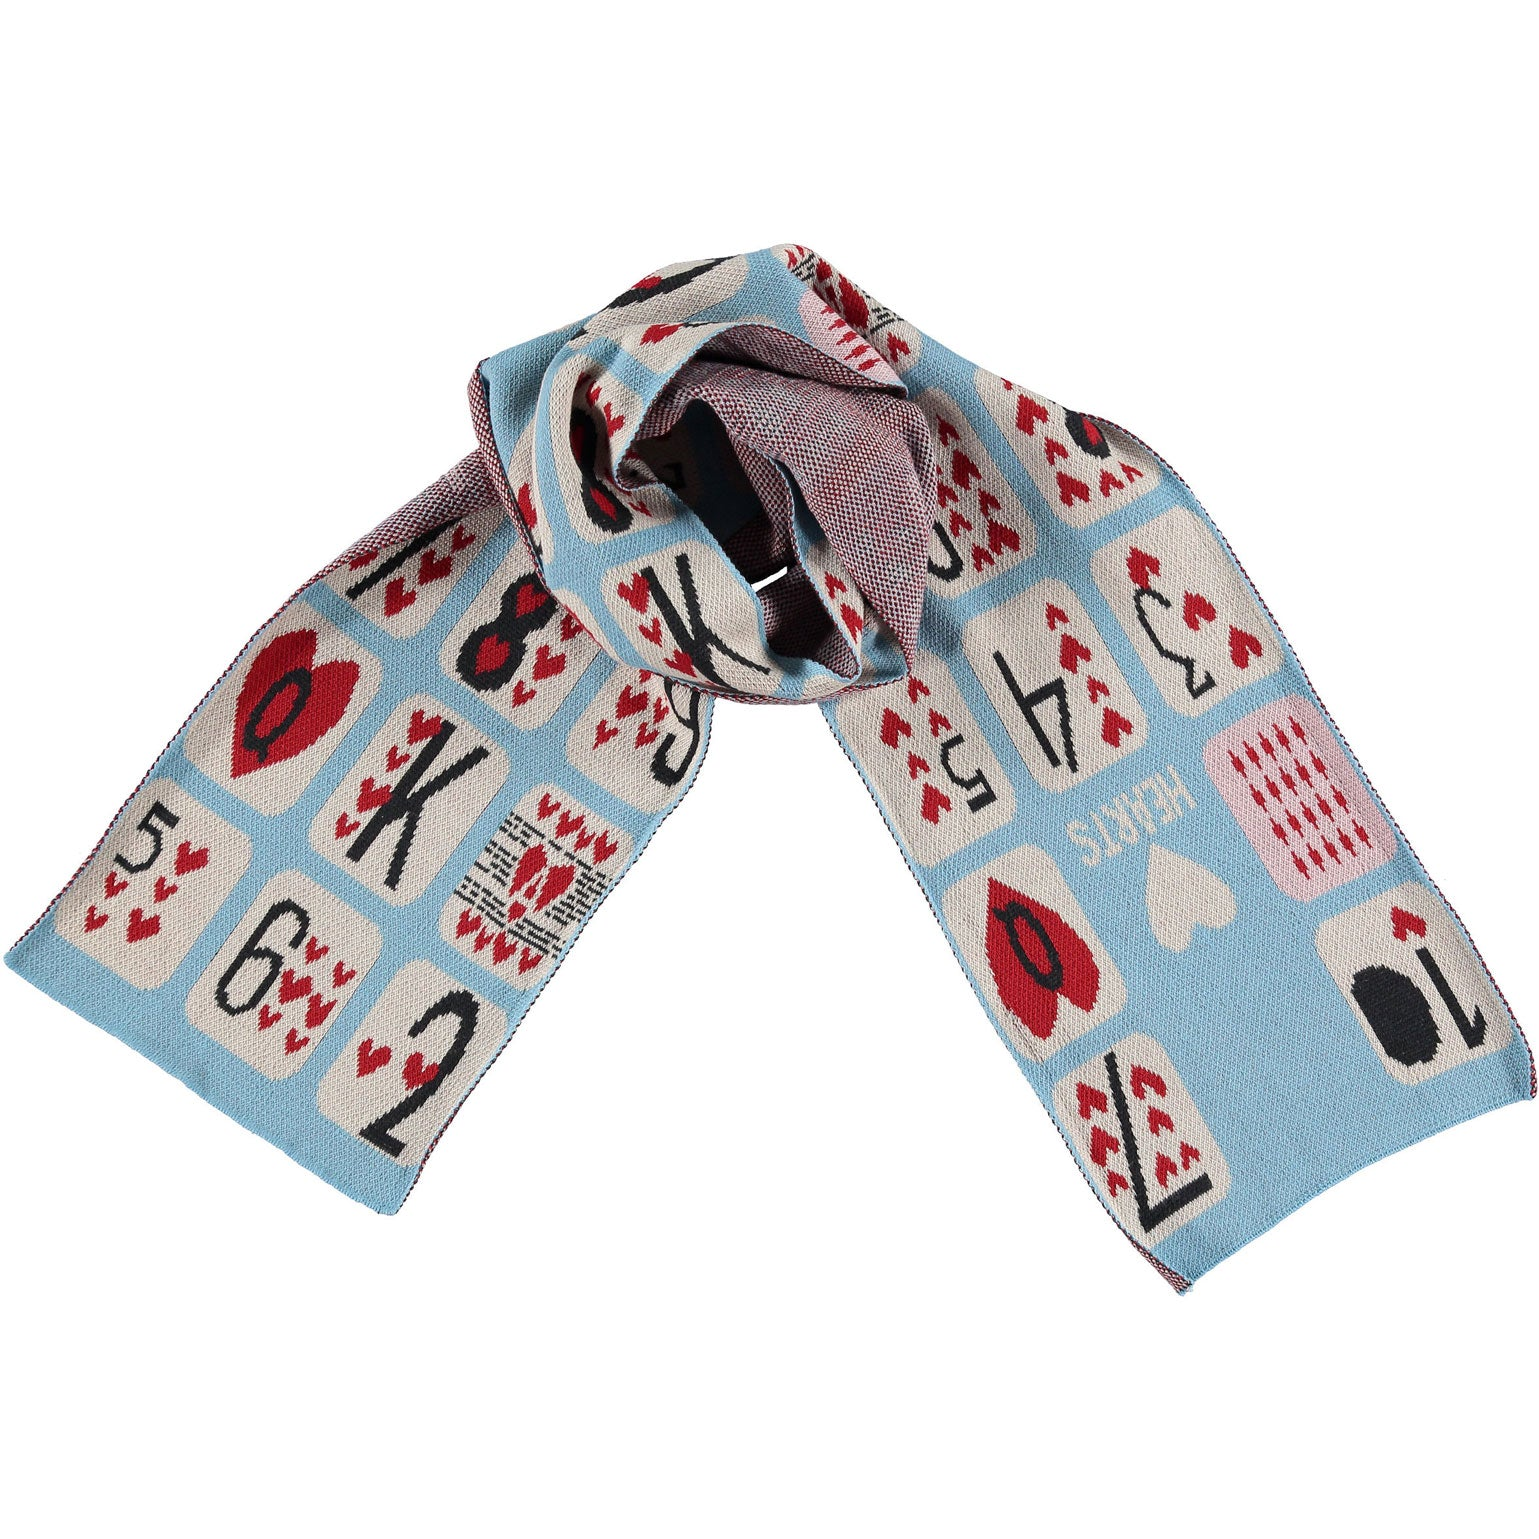 Beau Loves Sky Game of Hearts Knit Scarf